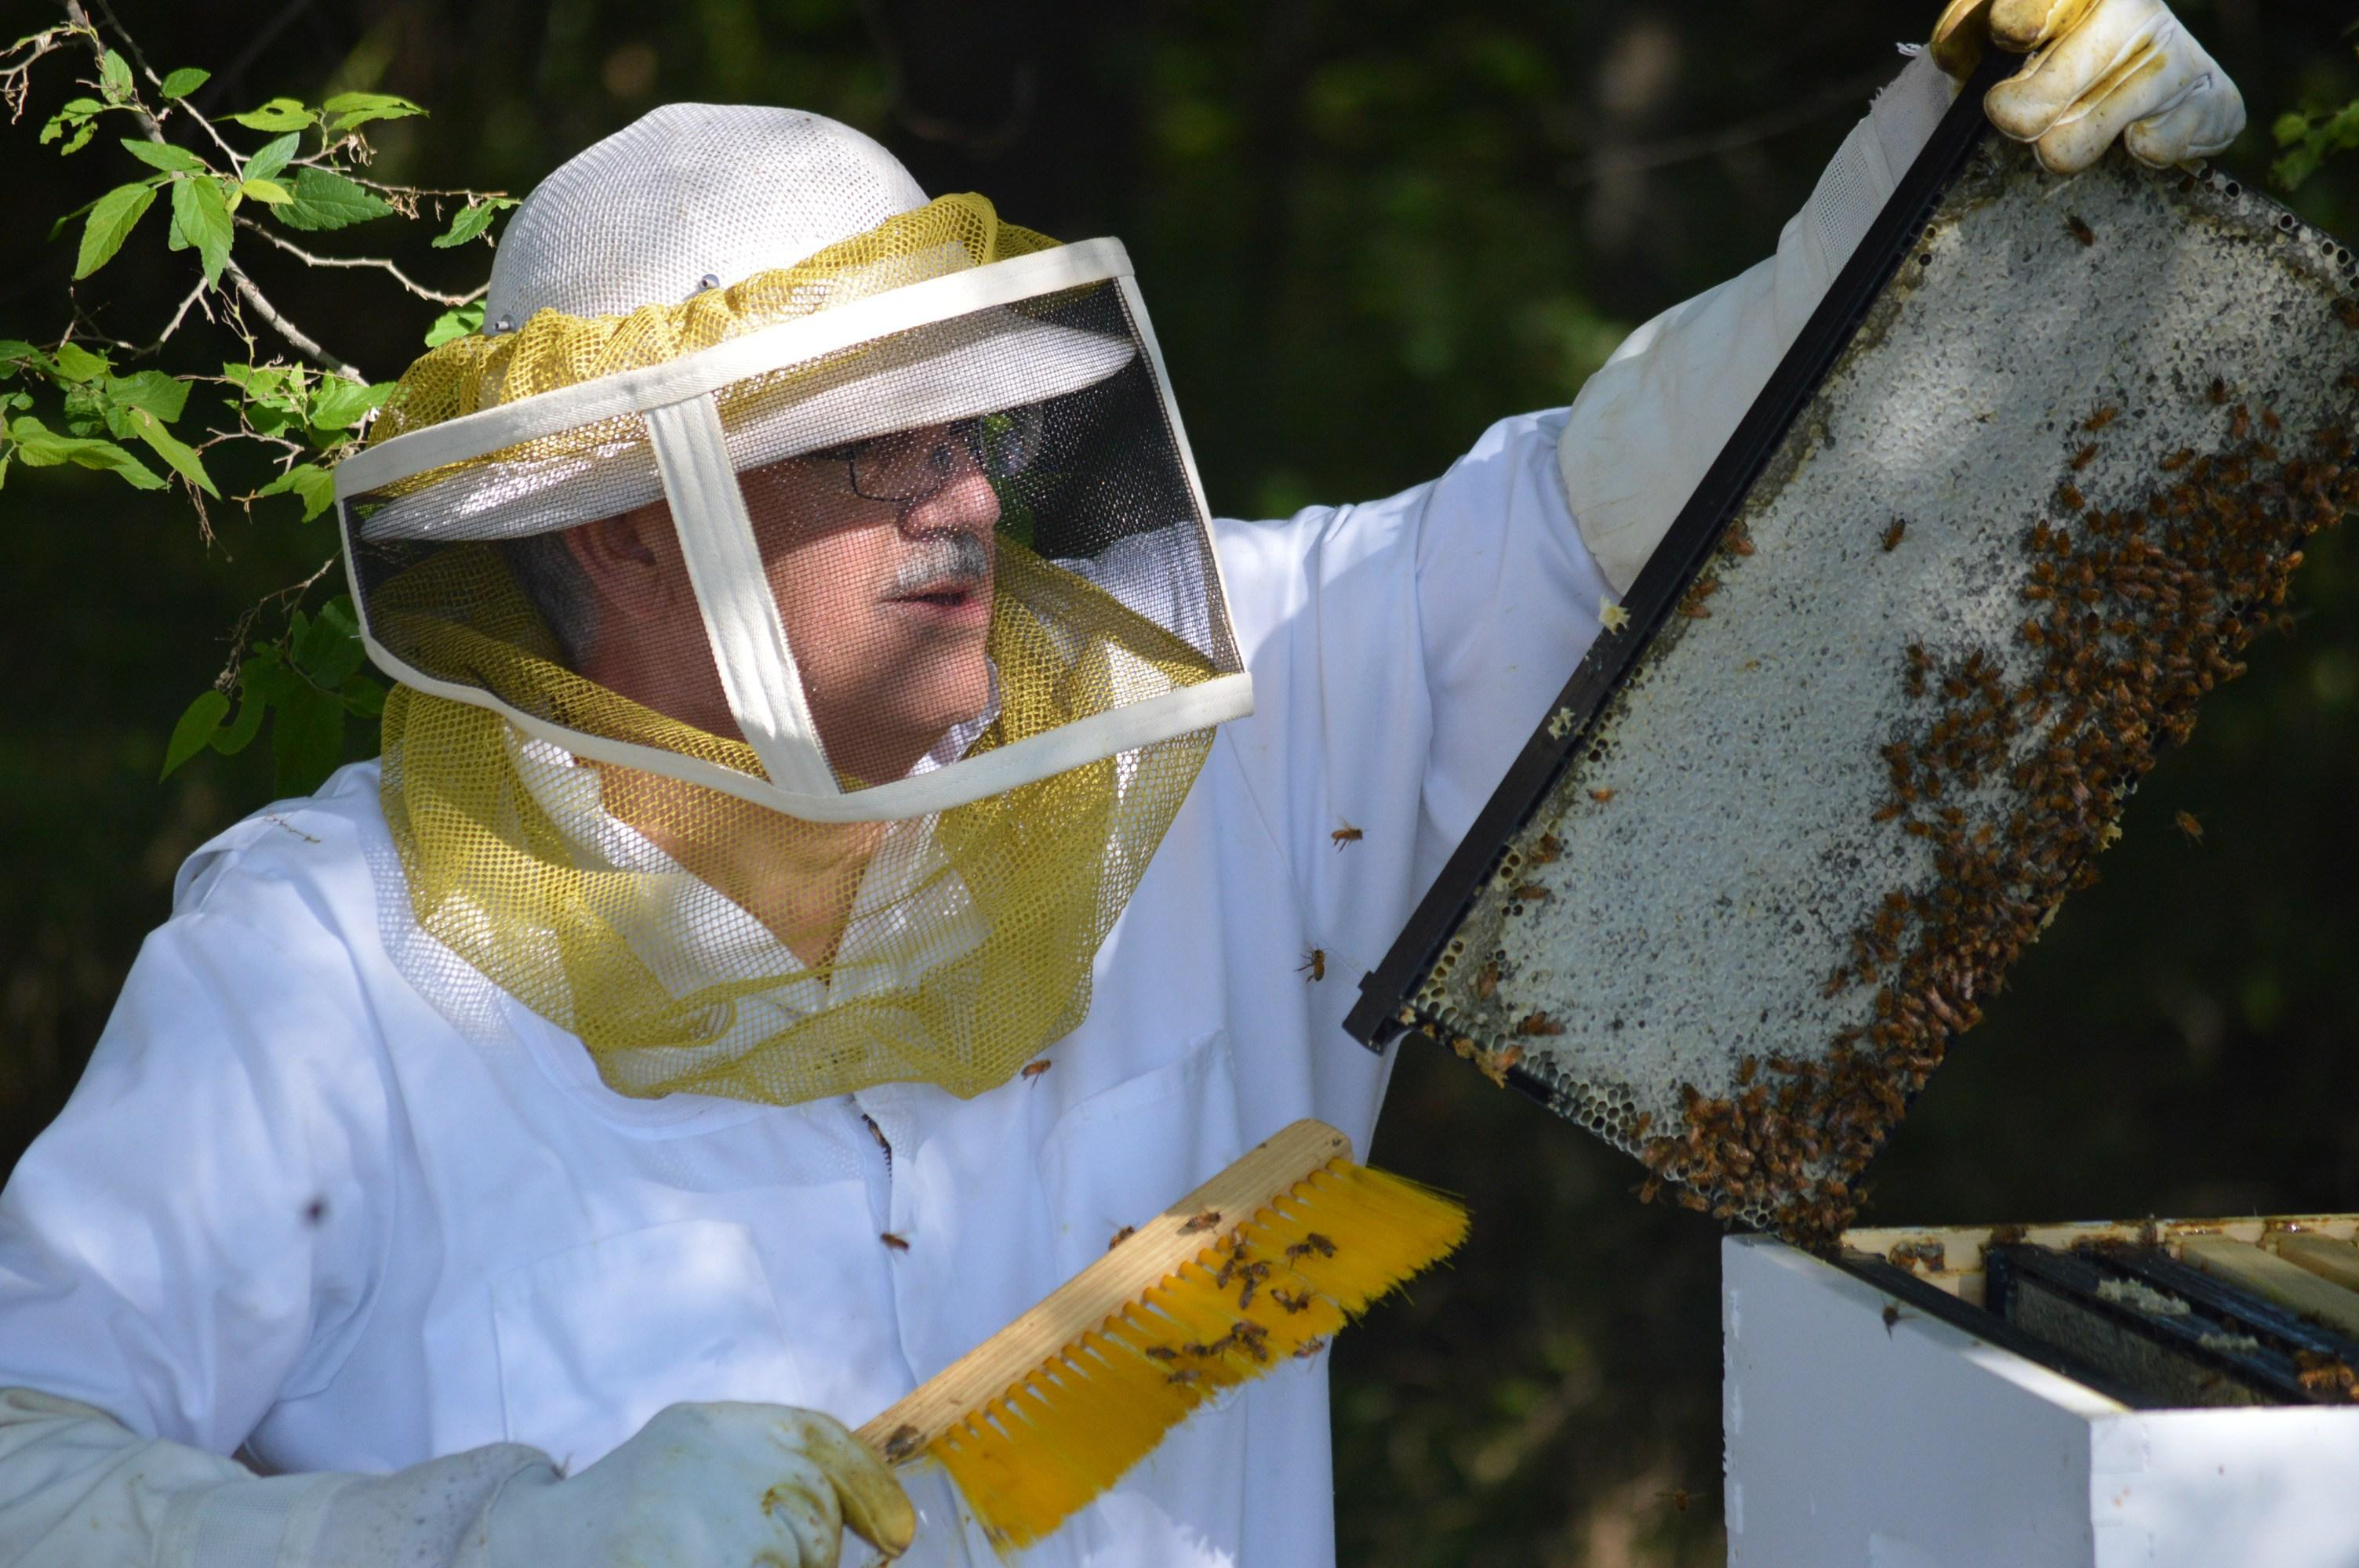 Beekeeper Steve House (Courtesy Midwest Master Beekeeper Program)